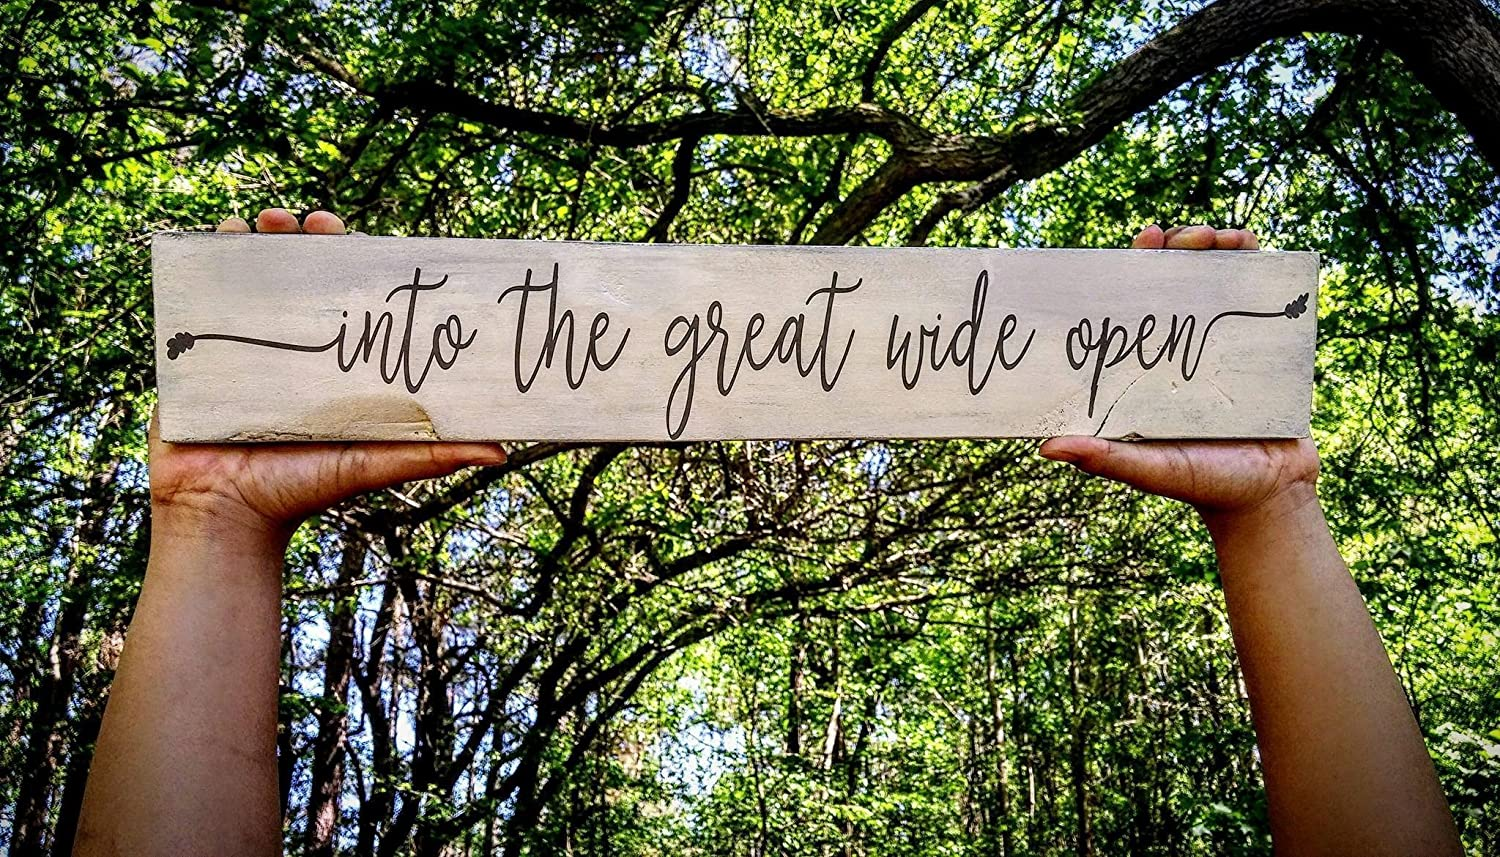 Into the great wide open, pallet sign, Tom Petty and the Heartbreakers, graduation gift, inspirational decor, wooden sign, motivational art